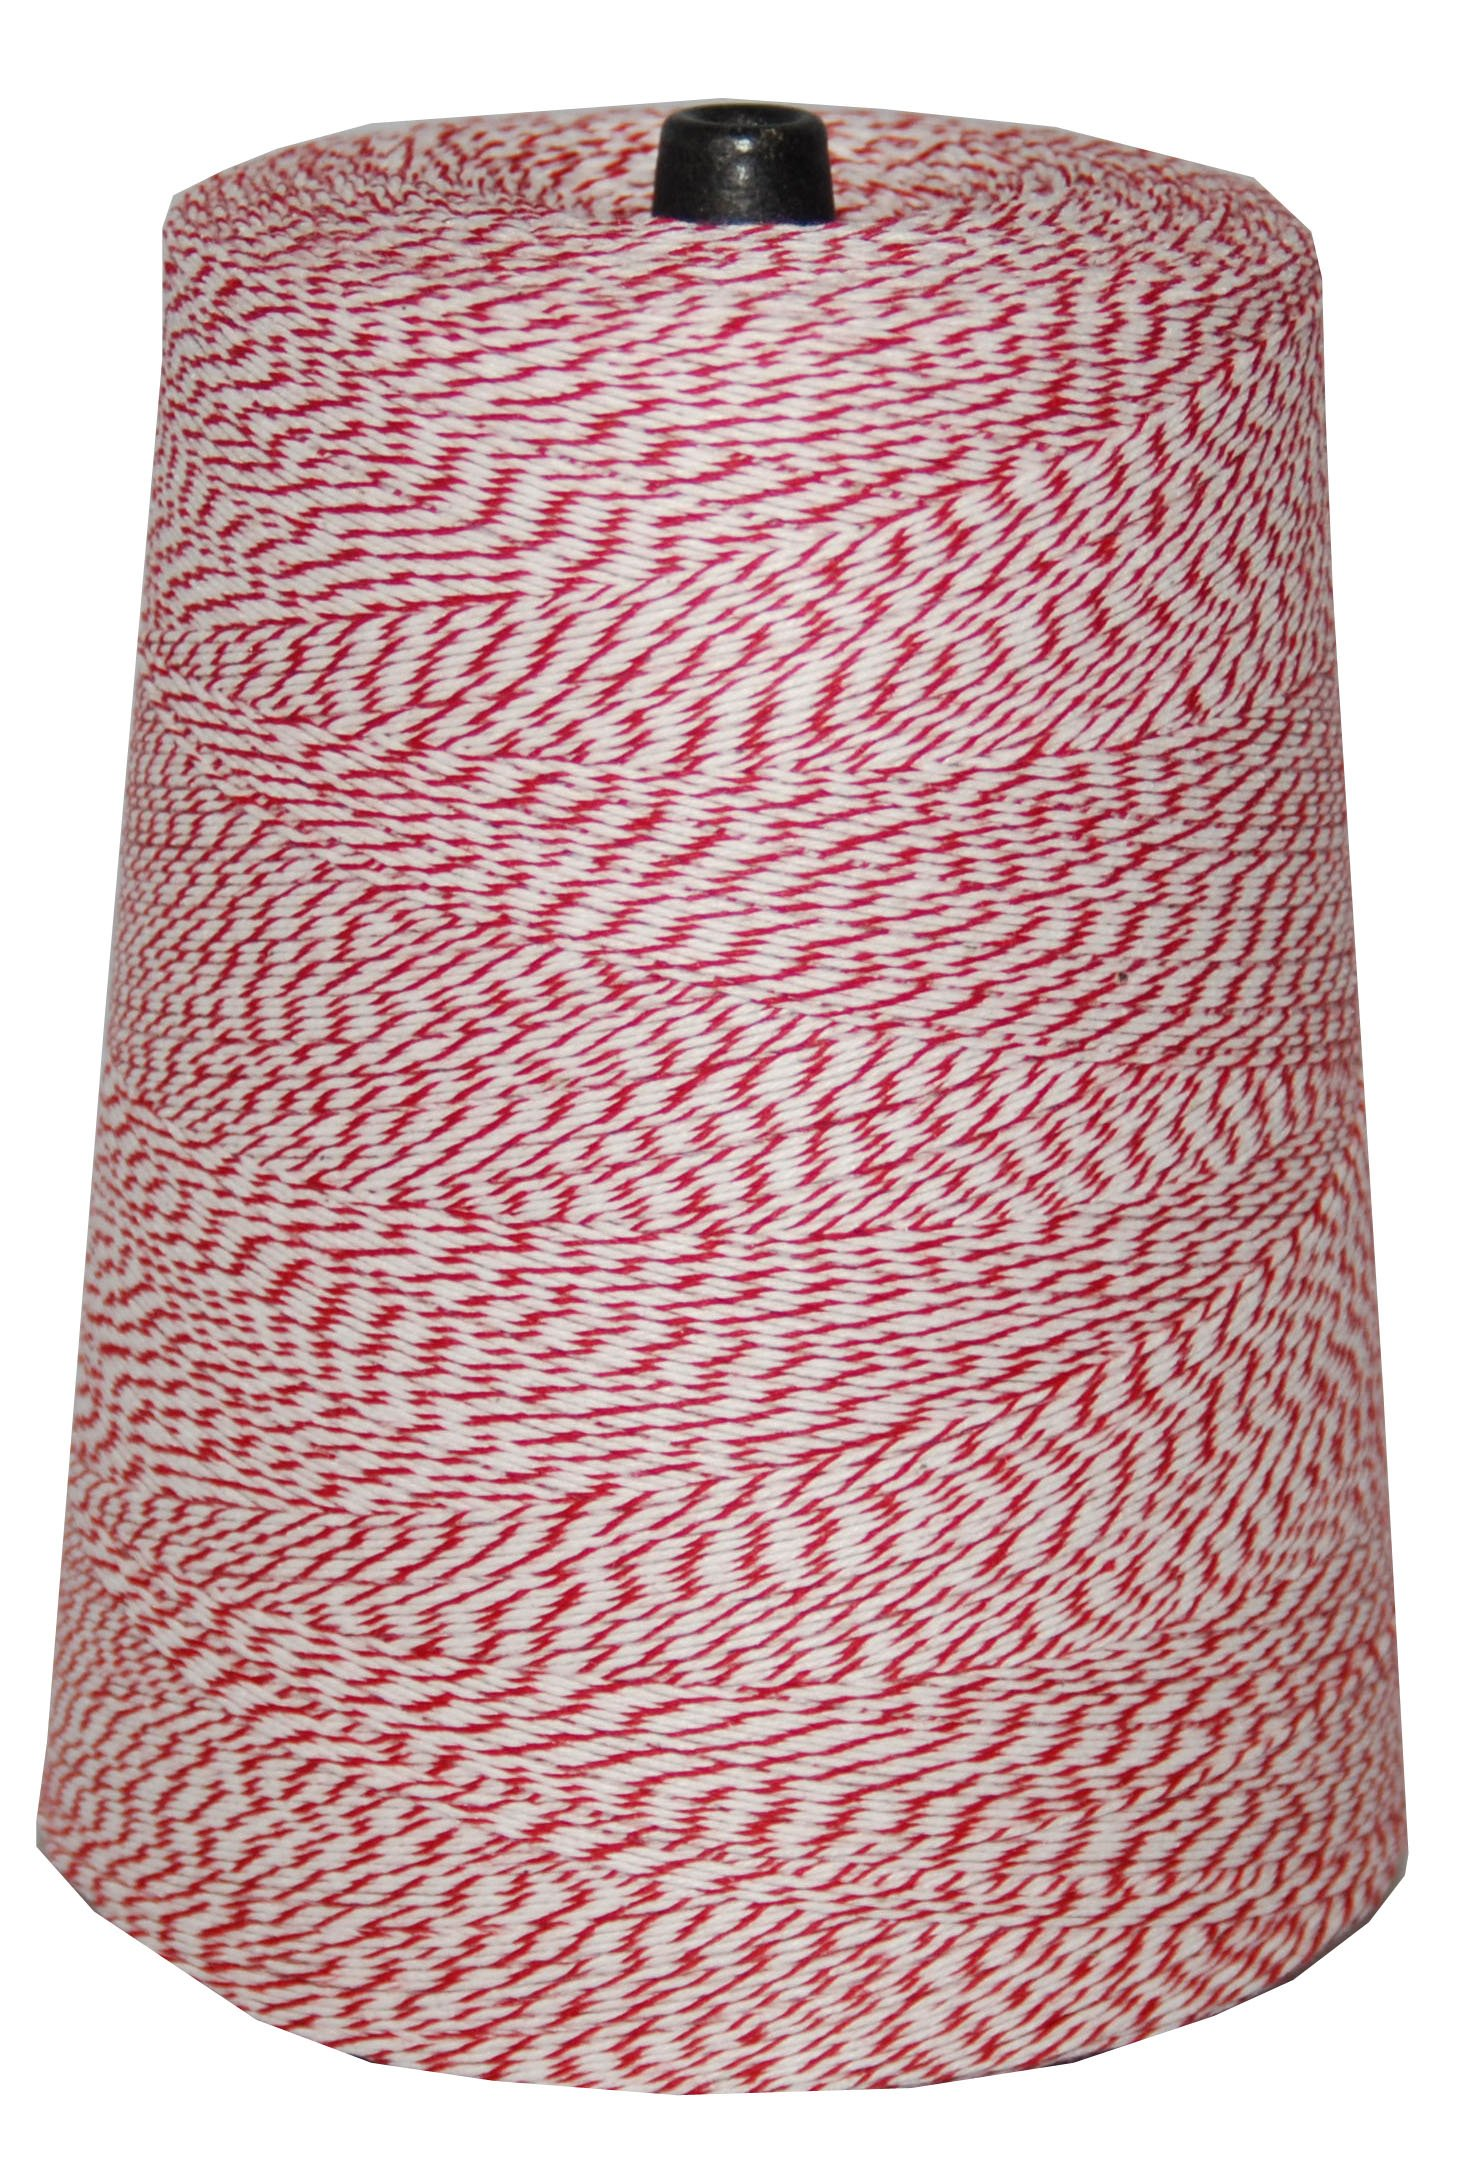 T.W . Evans Cordage 07-041 4 Poly Variegated 2-Pound Cone, 9600-Feet, Red and White